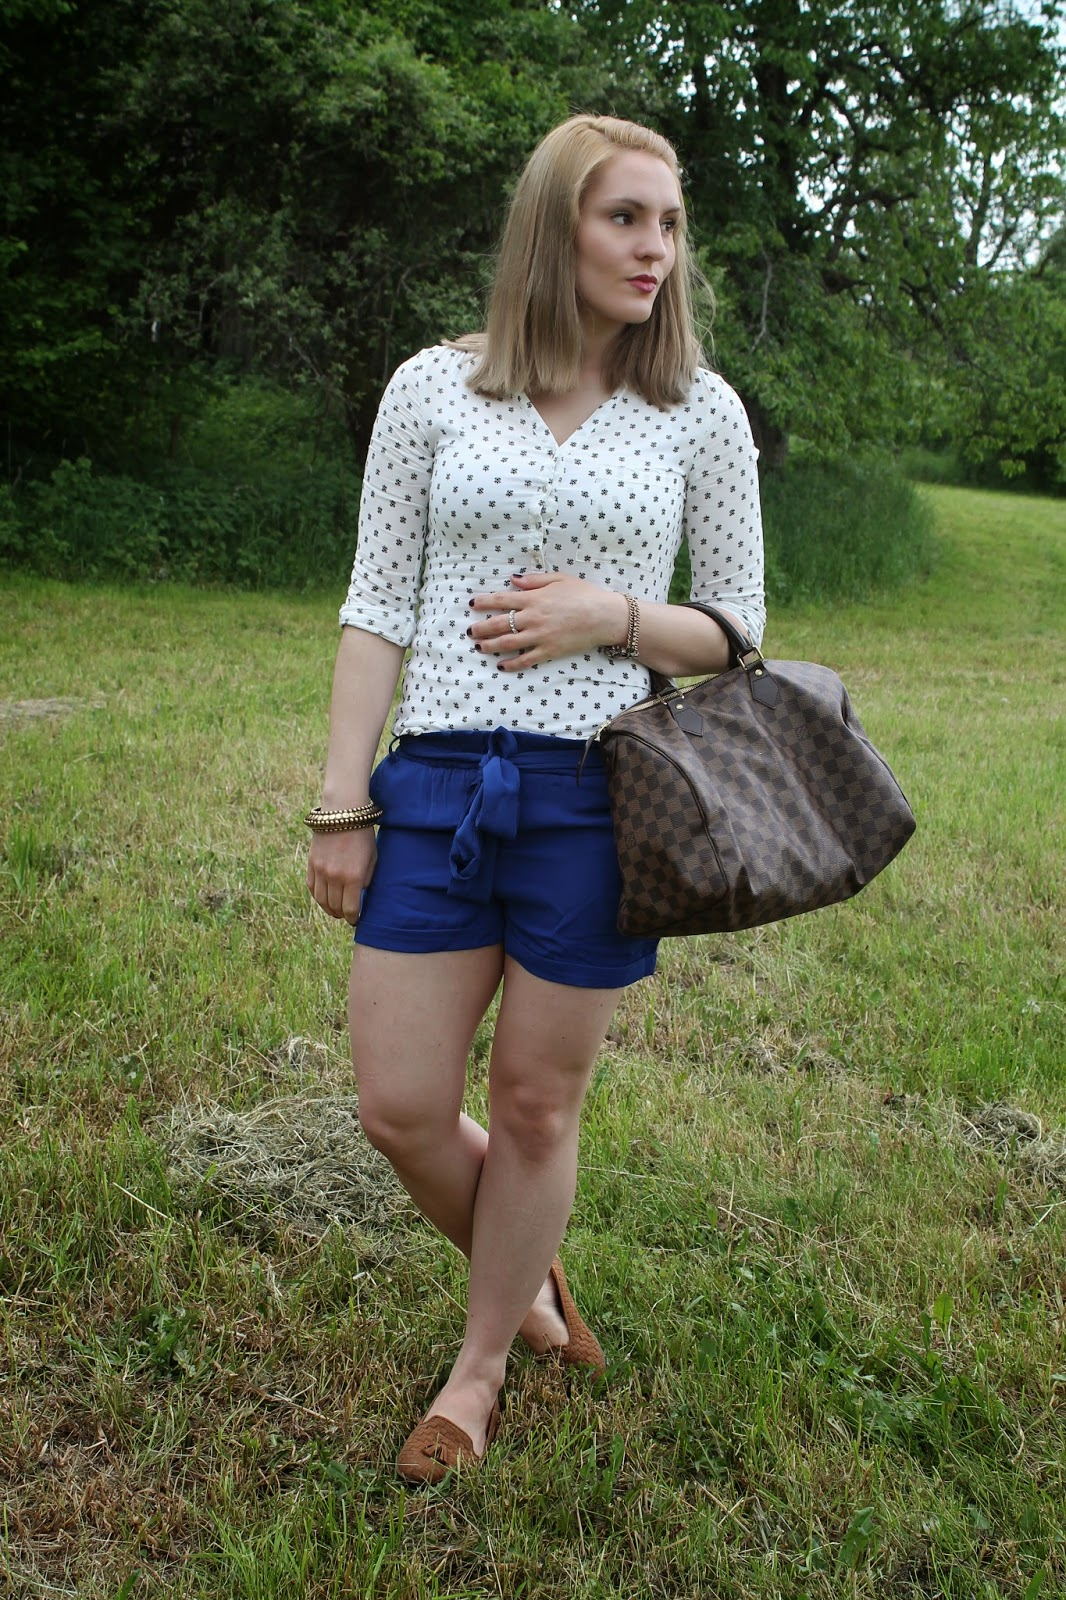 Fashionblogger Austria / Österreich / Deutsch / German / Kärnten / Carinthia / Klagenfurt / Köttmannsdorf / Spring Look / Classy / Edgy / Summer / Summer Style 2014 / Summer Look / Fashionista Look / Pimkie / New Yorker / Louis Vuitton / Persunmall / Forever 21 / Brown Loafers / Blue Shorts / White black Blouse / Louis Vuitton Damier Ebene Speedy